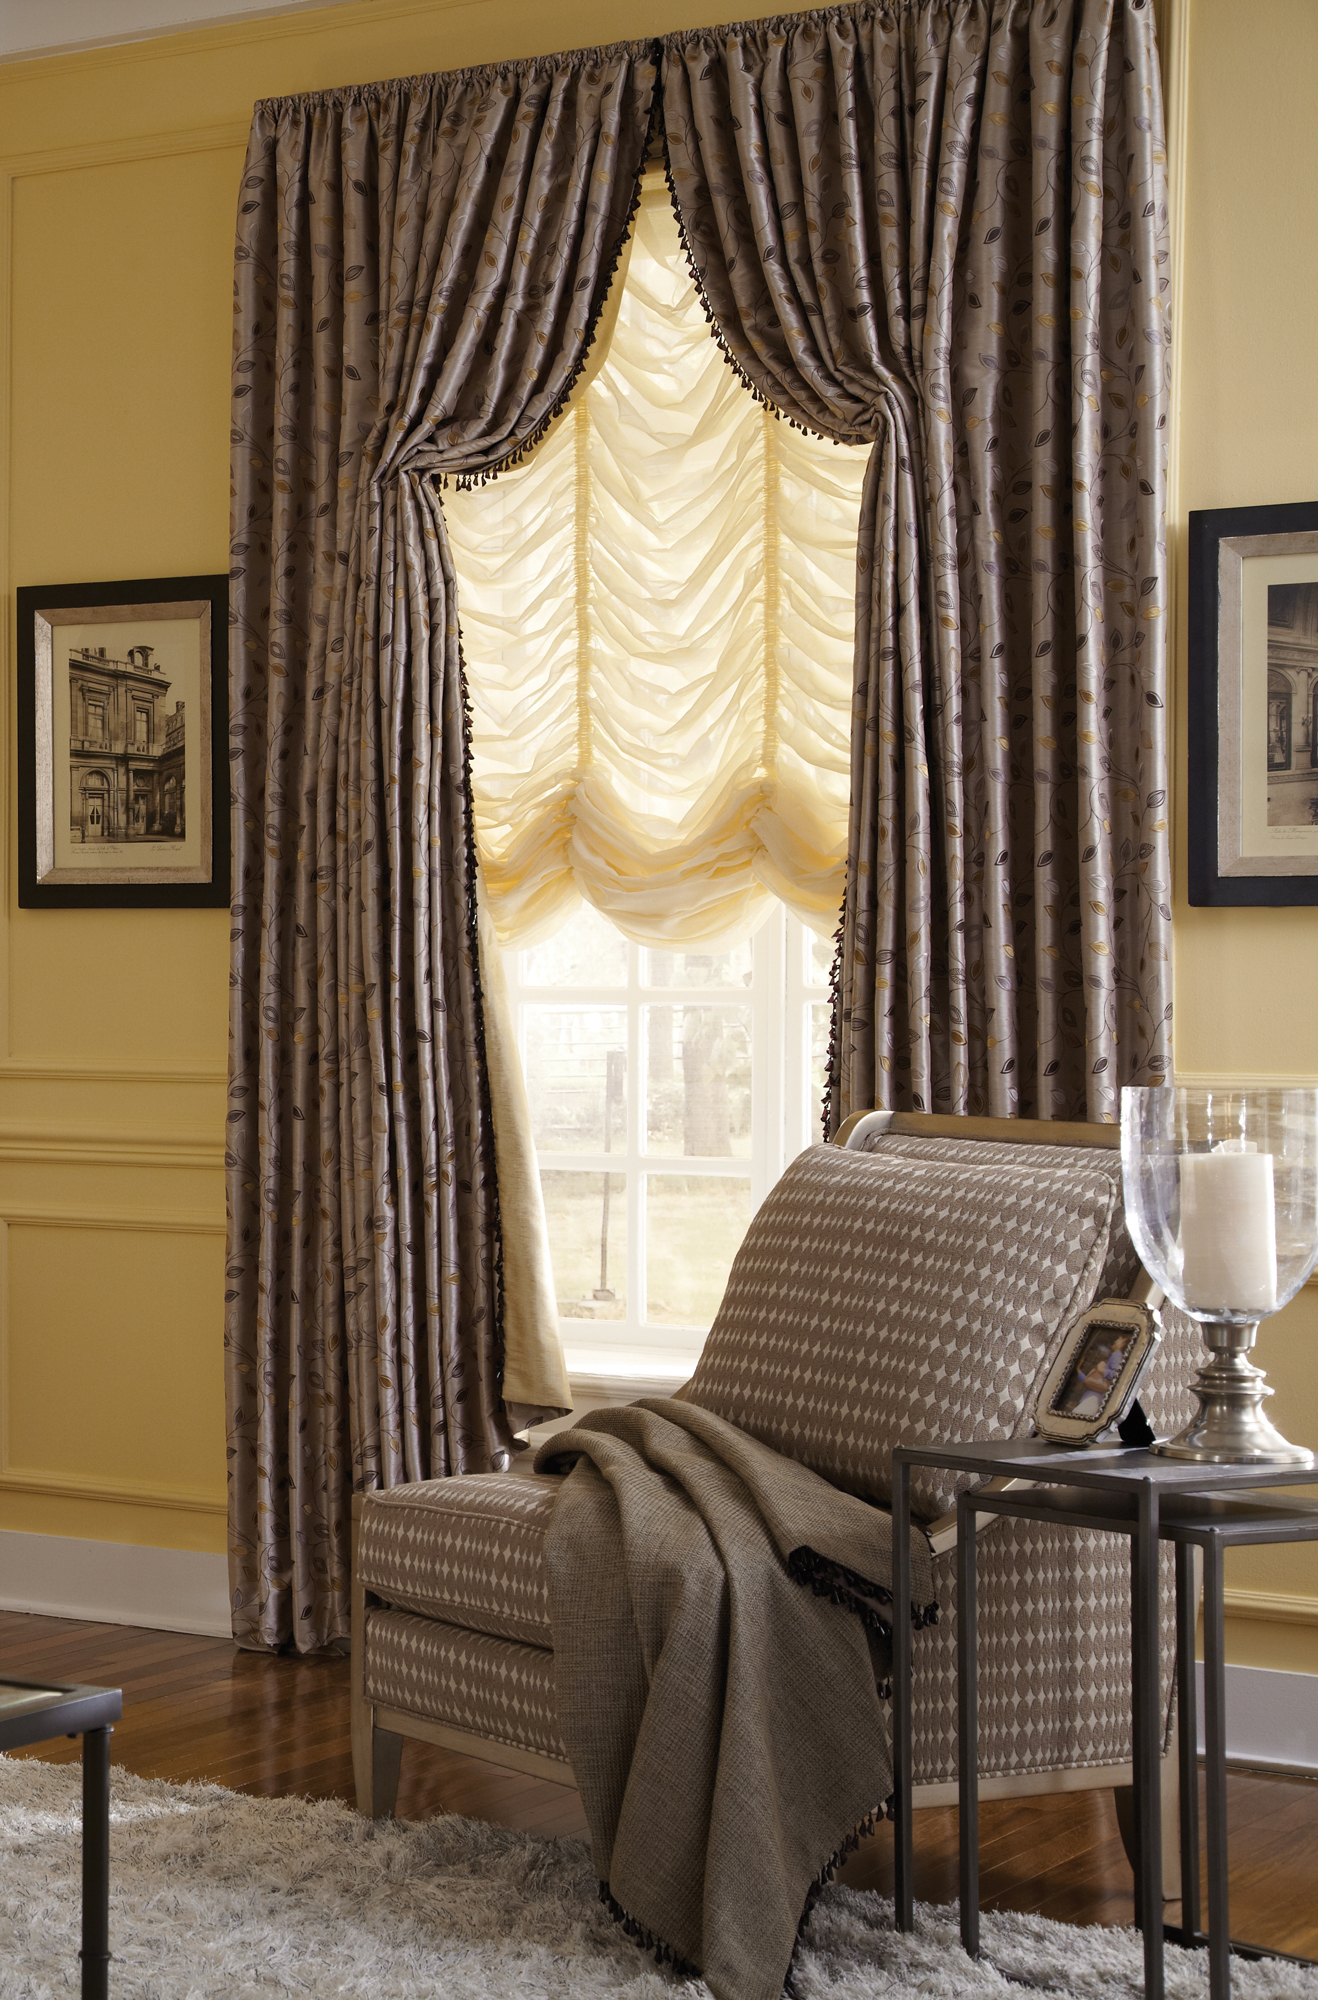 Drapes in Sitting Area